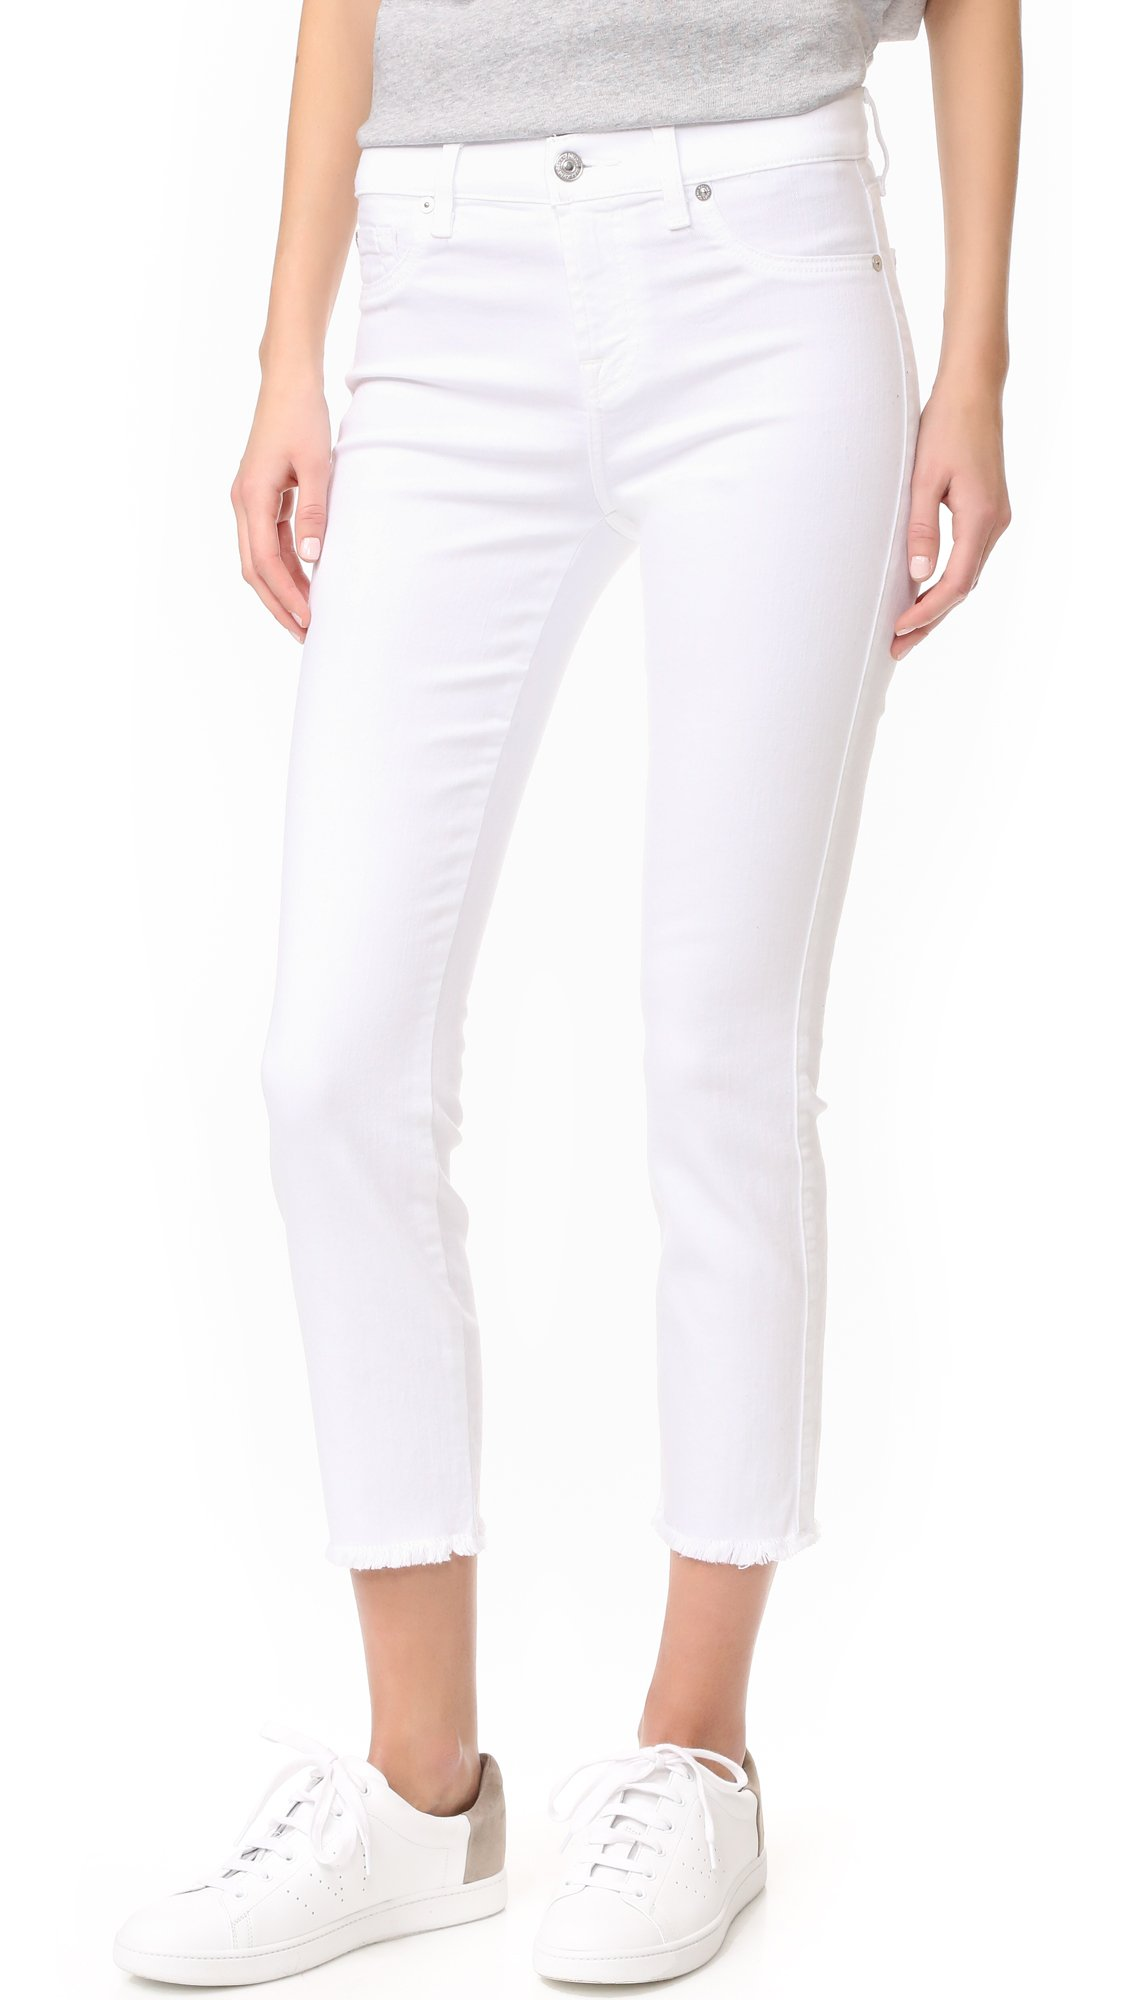 7 For All Mankind Women's Roxanne Ankle Jean with Raw Hem, White Fashion, 30